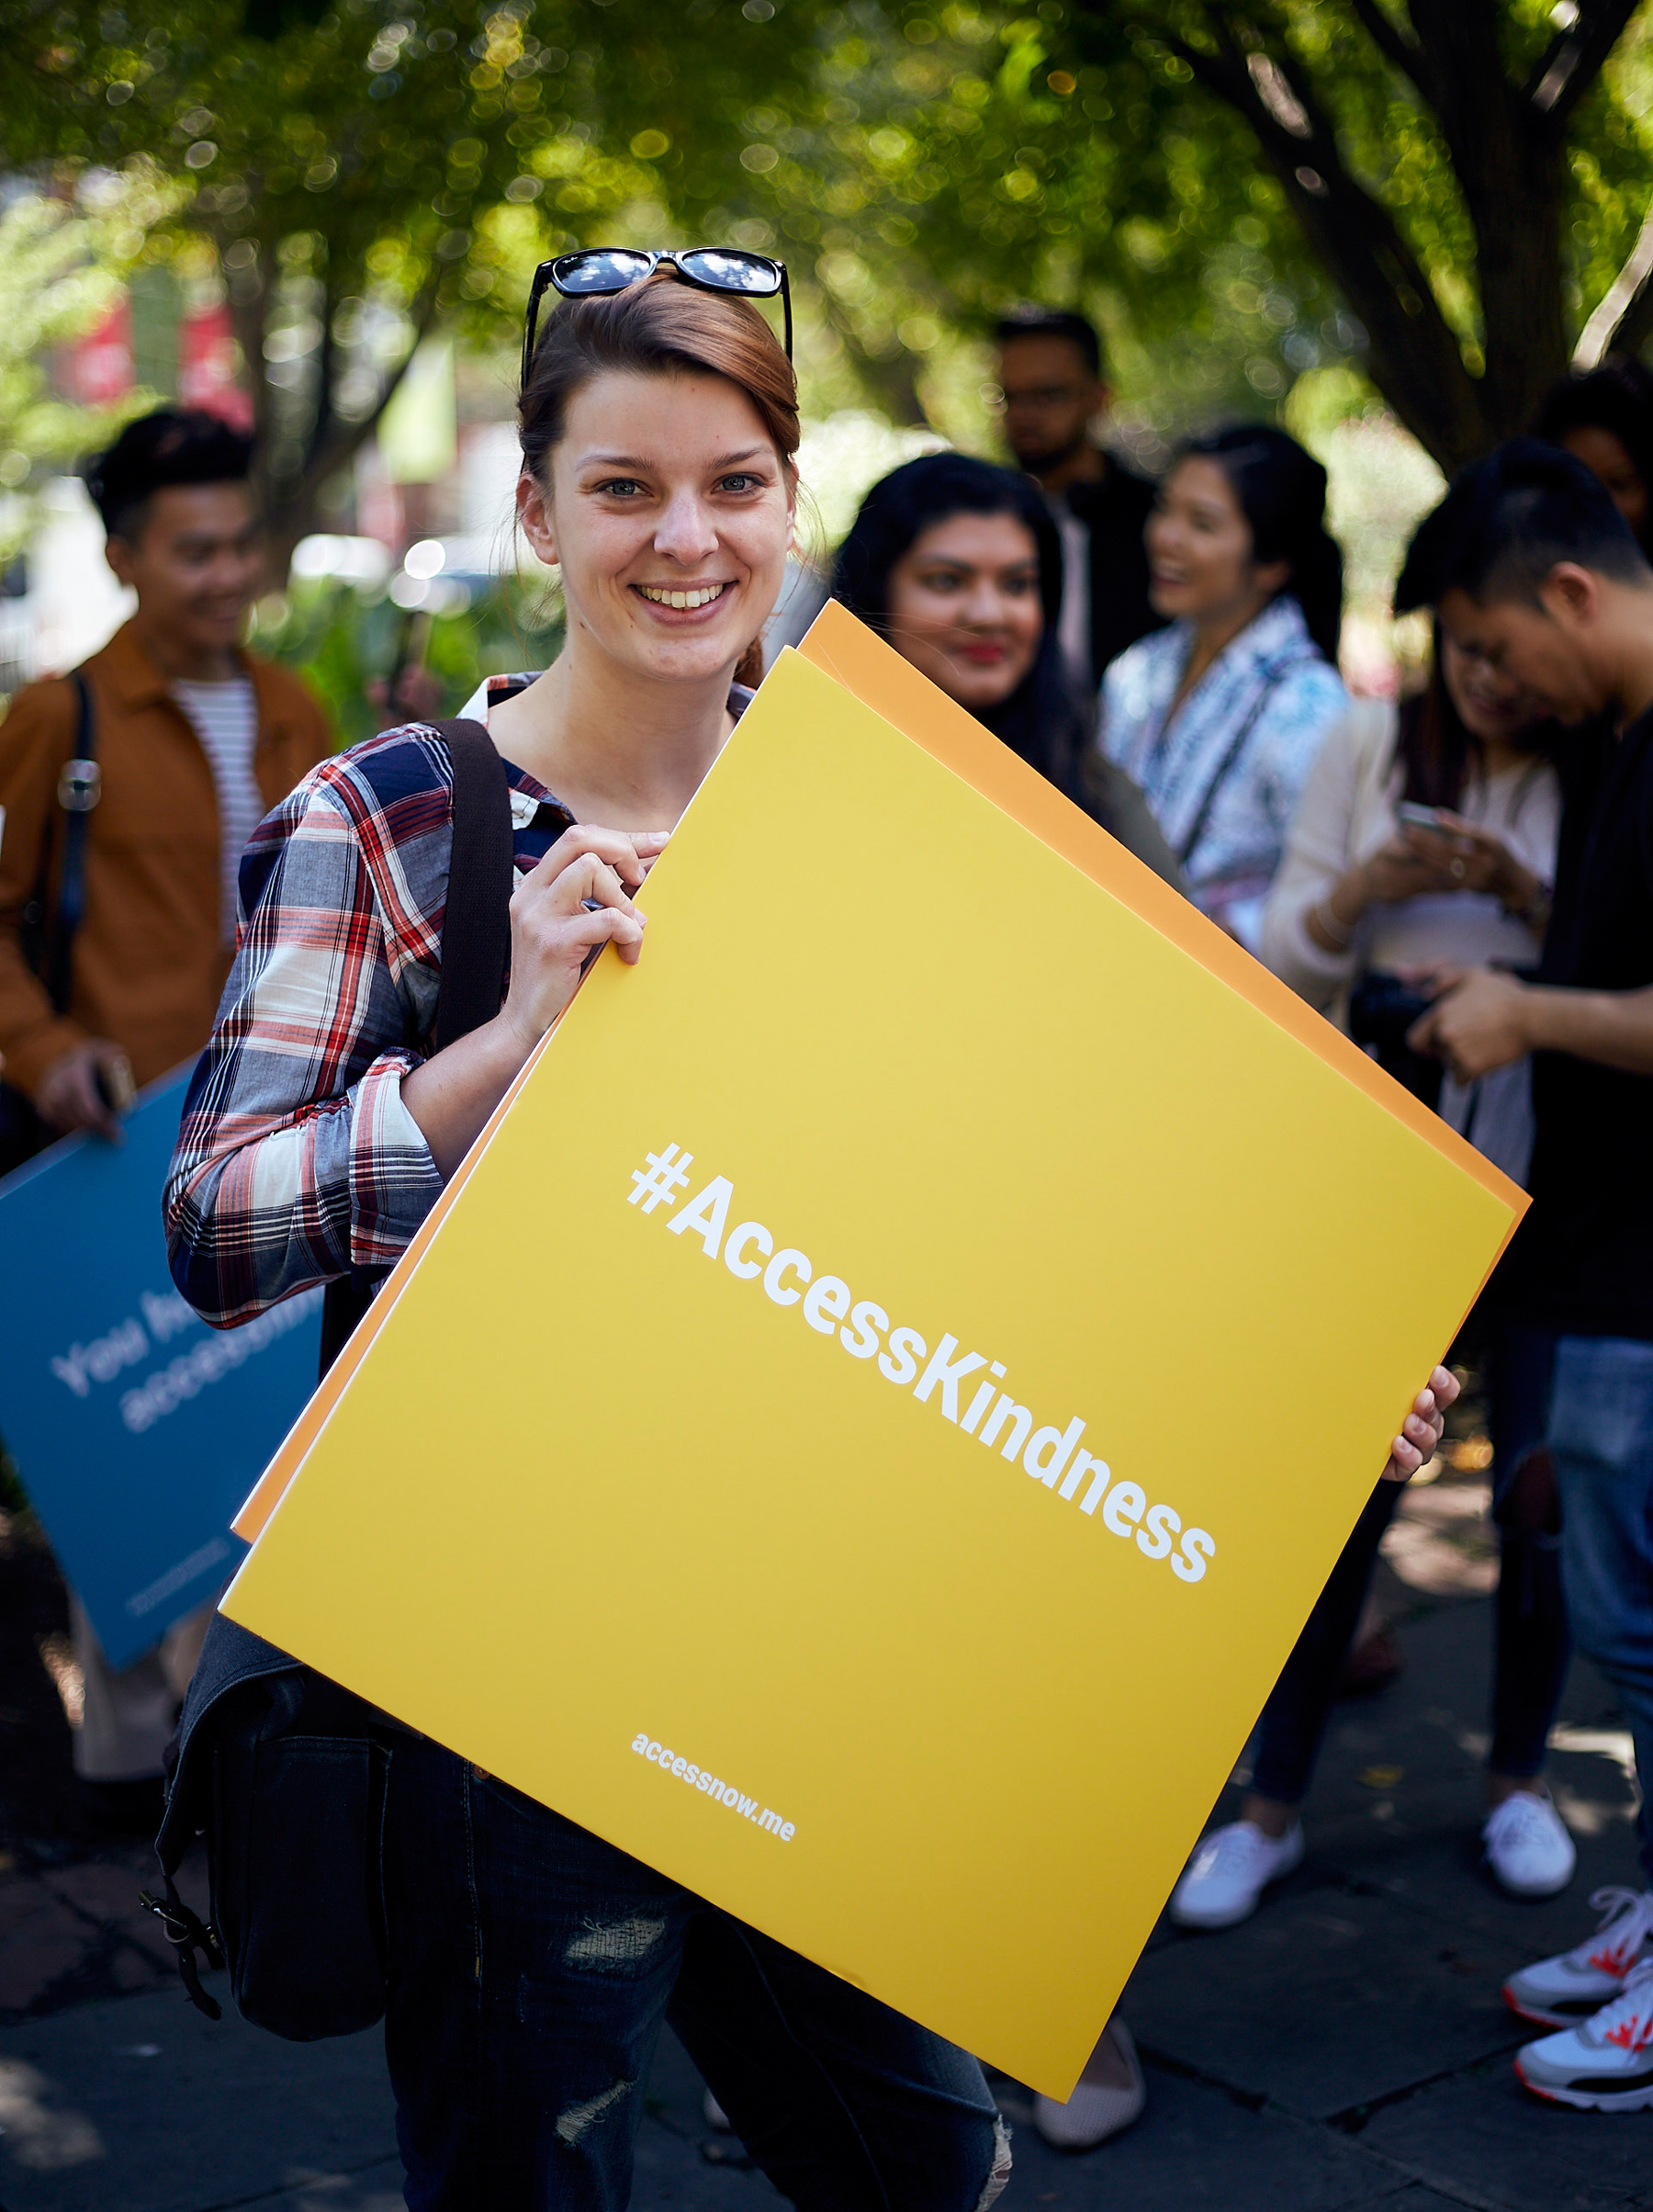 """photo of young woman smiling as she holds up a yellow sign that reads """"Access Kindness"""" in bold"""